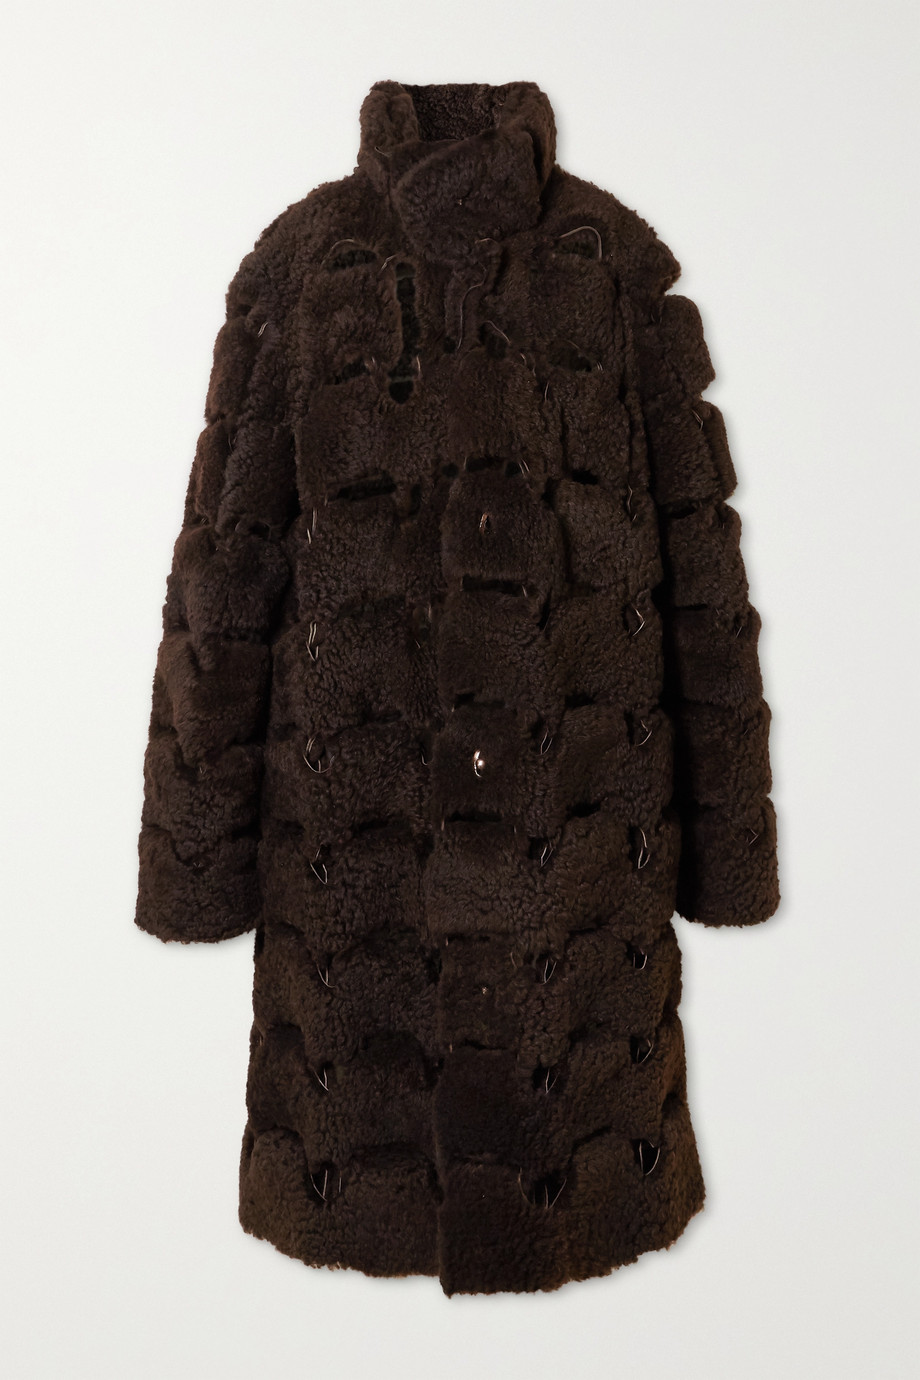 Bottega Veneta Oversized cutout shearling coat